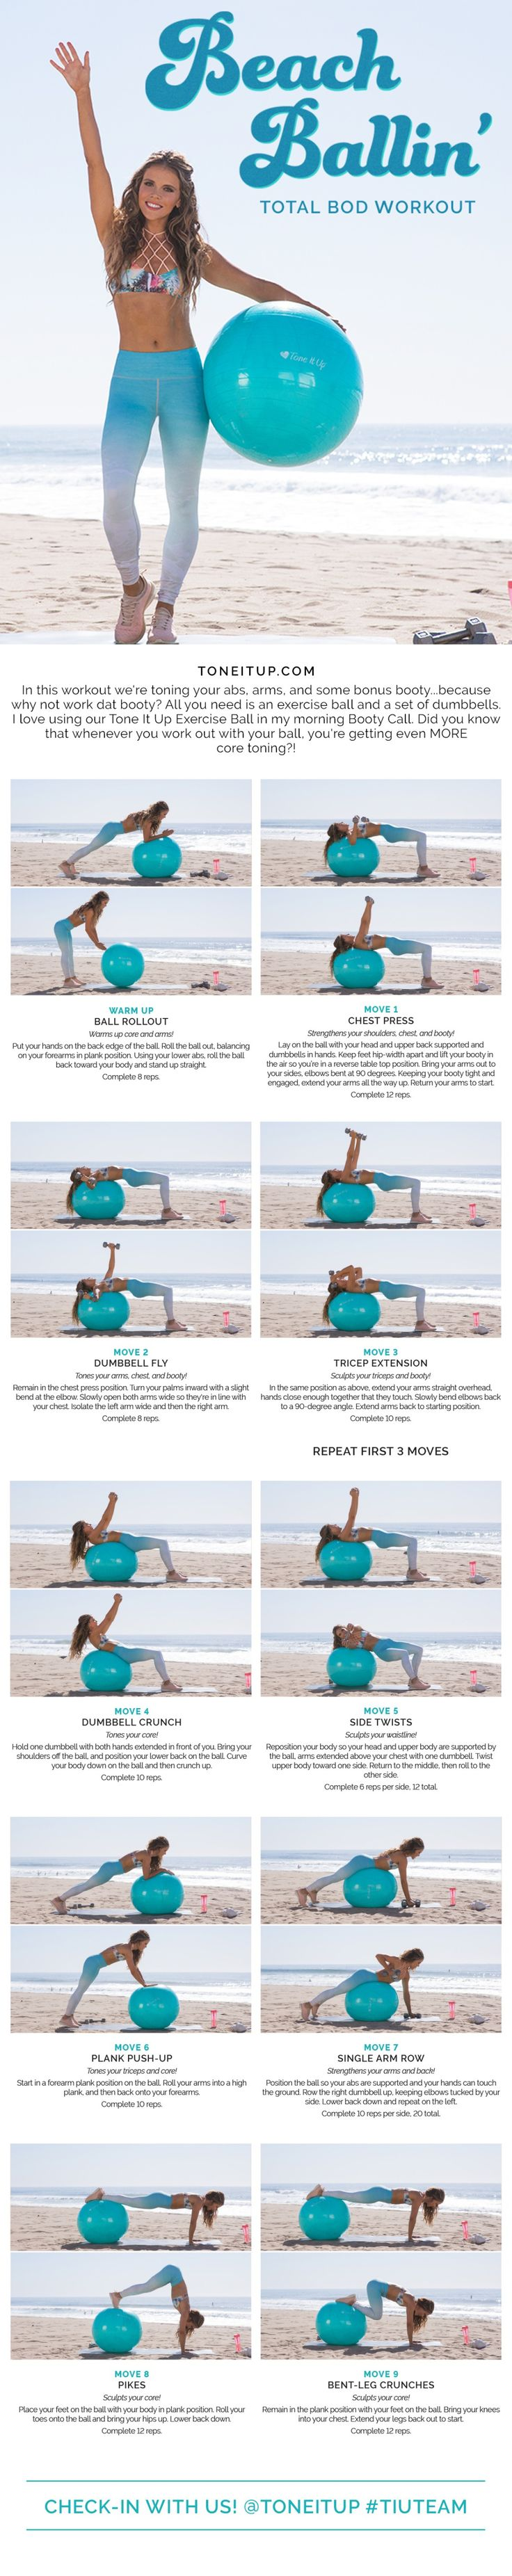 Beach Ballin' Total Body Workout! We're toning your abs, arms, and some bonus booty…because why not work dat booty? ;) full body workout routine * fitness motivation * boost metabolism * burn fat *